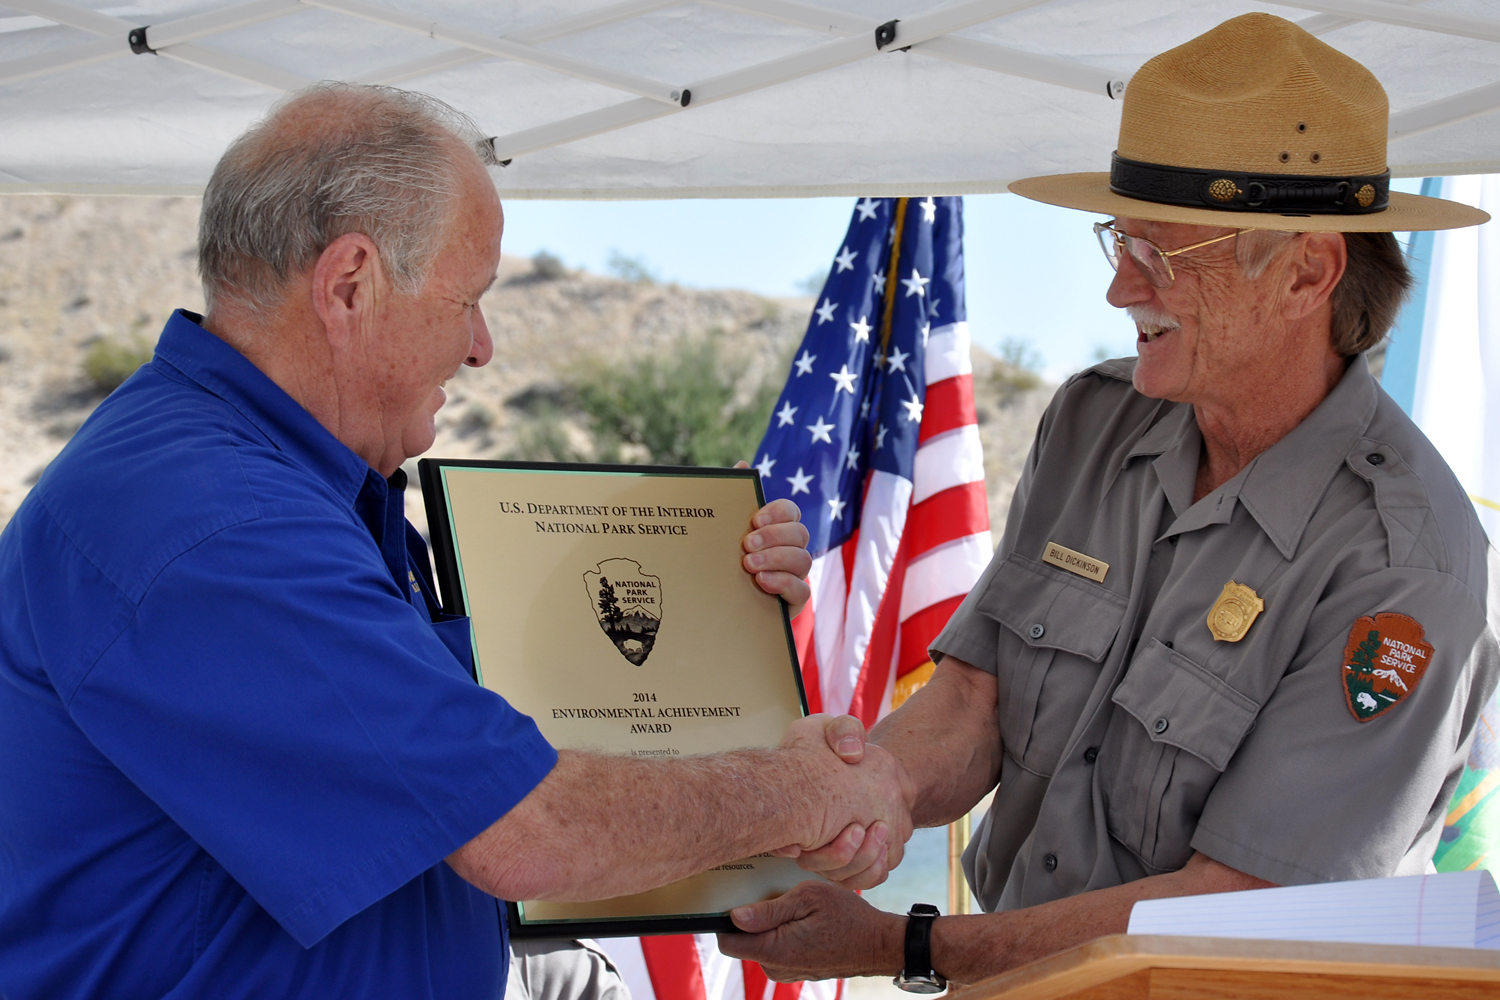 On behalf of National Park Service Director Jonathan Jarvis, Superintendent Bill Dickinson presents John Schoppmann, Forever Resorts' executive vice president, with the 2014 National Park Service Environmental Achievement Award for Green Innovation.